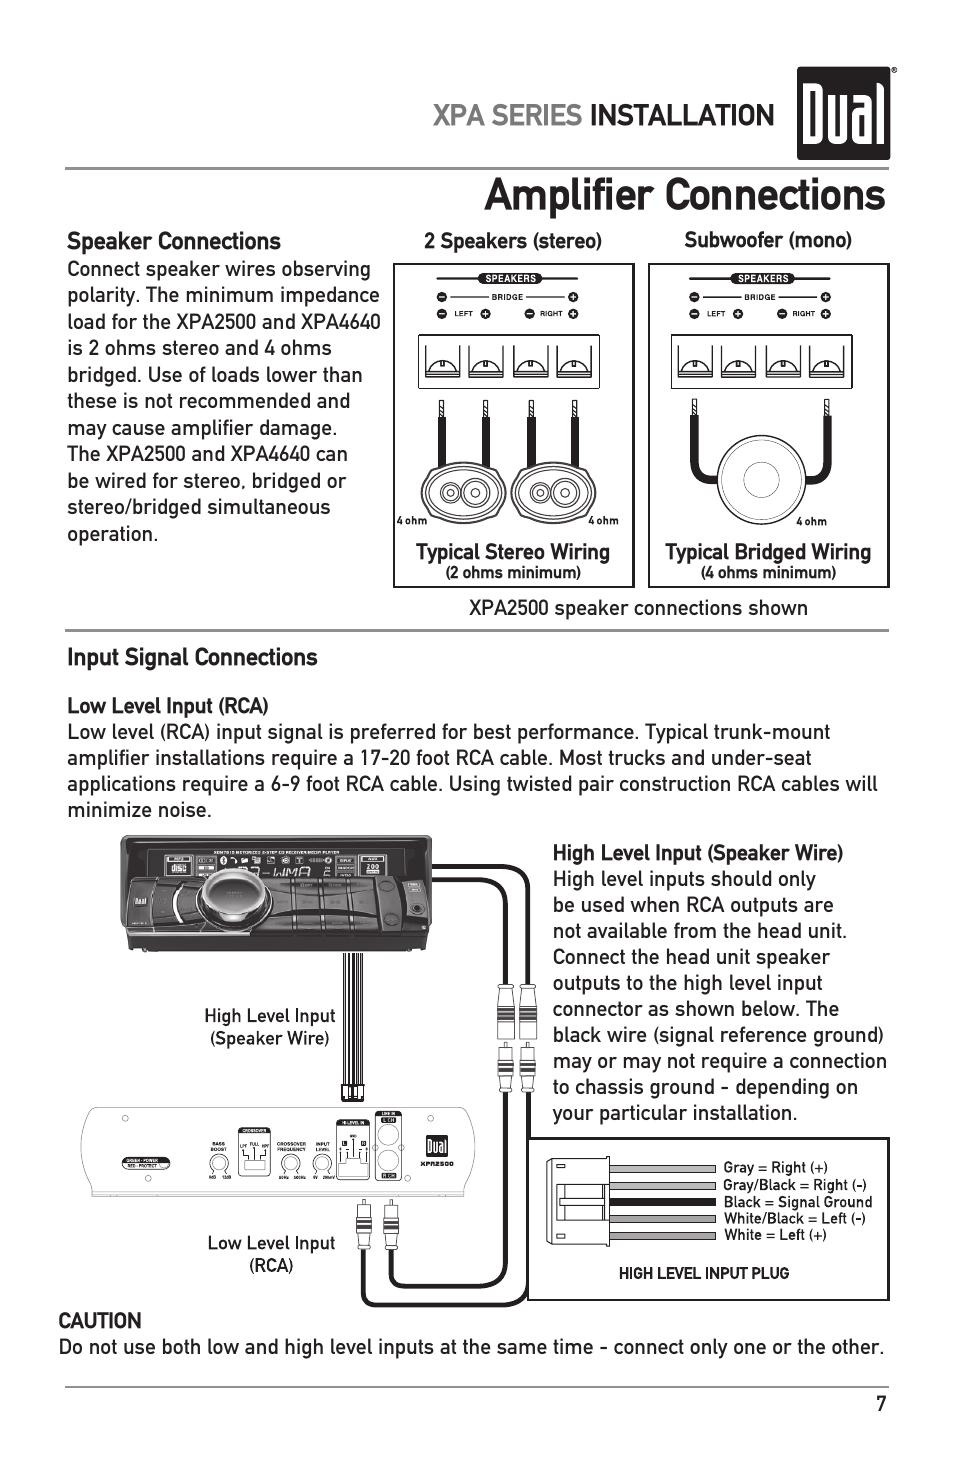 Amplifier Connections Xpa Series Installation Dual Xpa4640 User Wiring Add The 2 Speakers Impedance Together For Parallel Manual Page 7 12